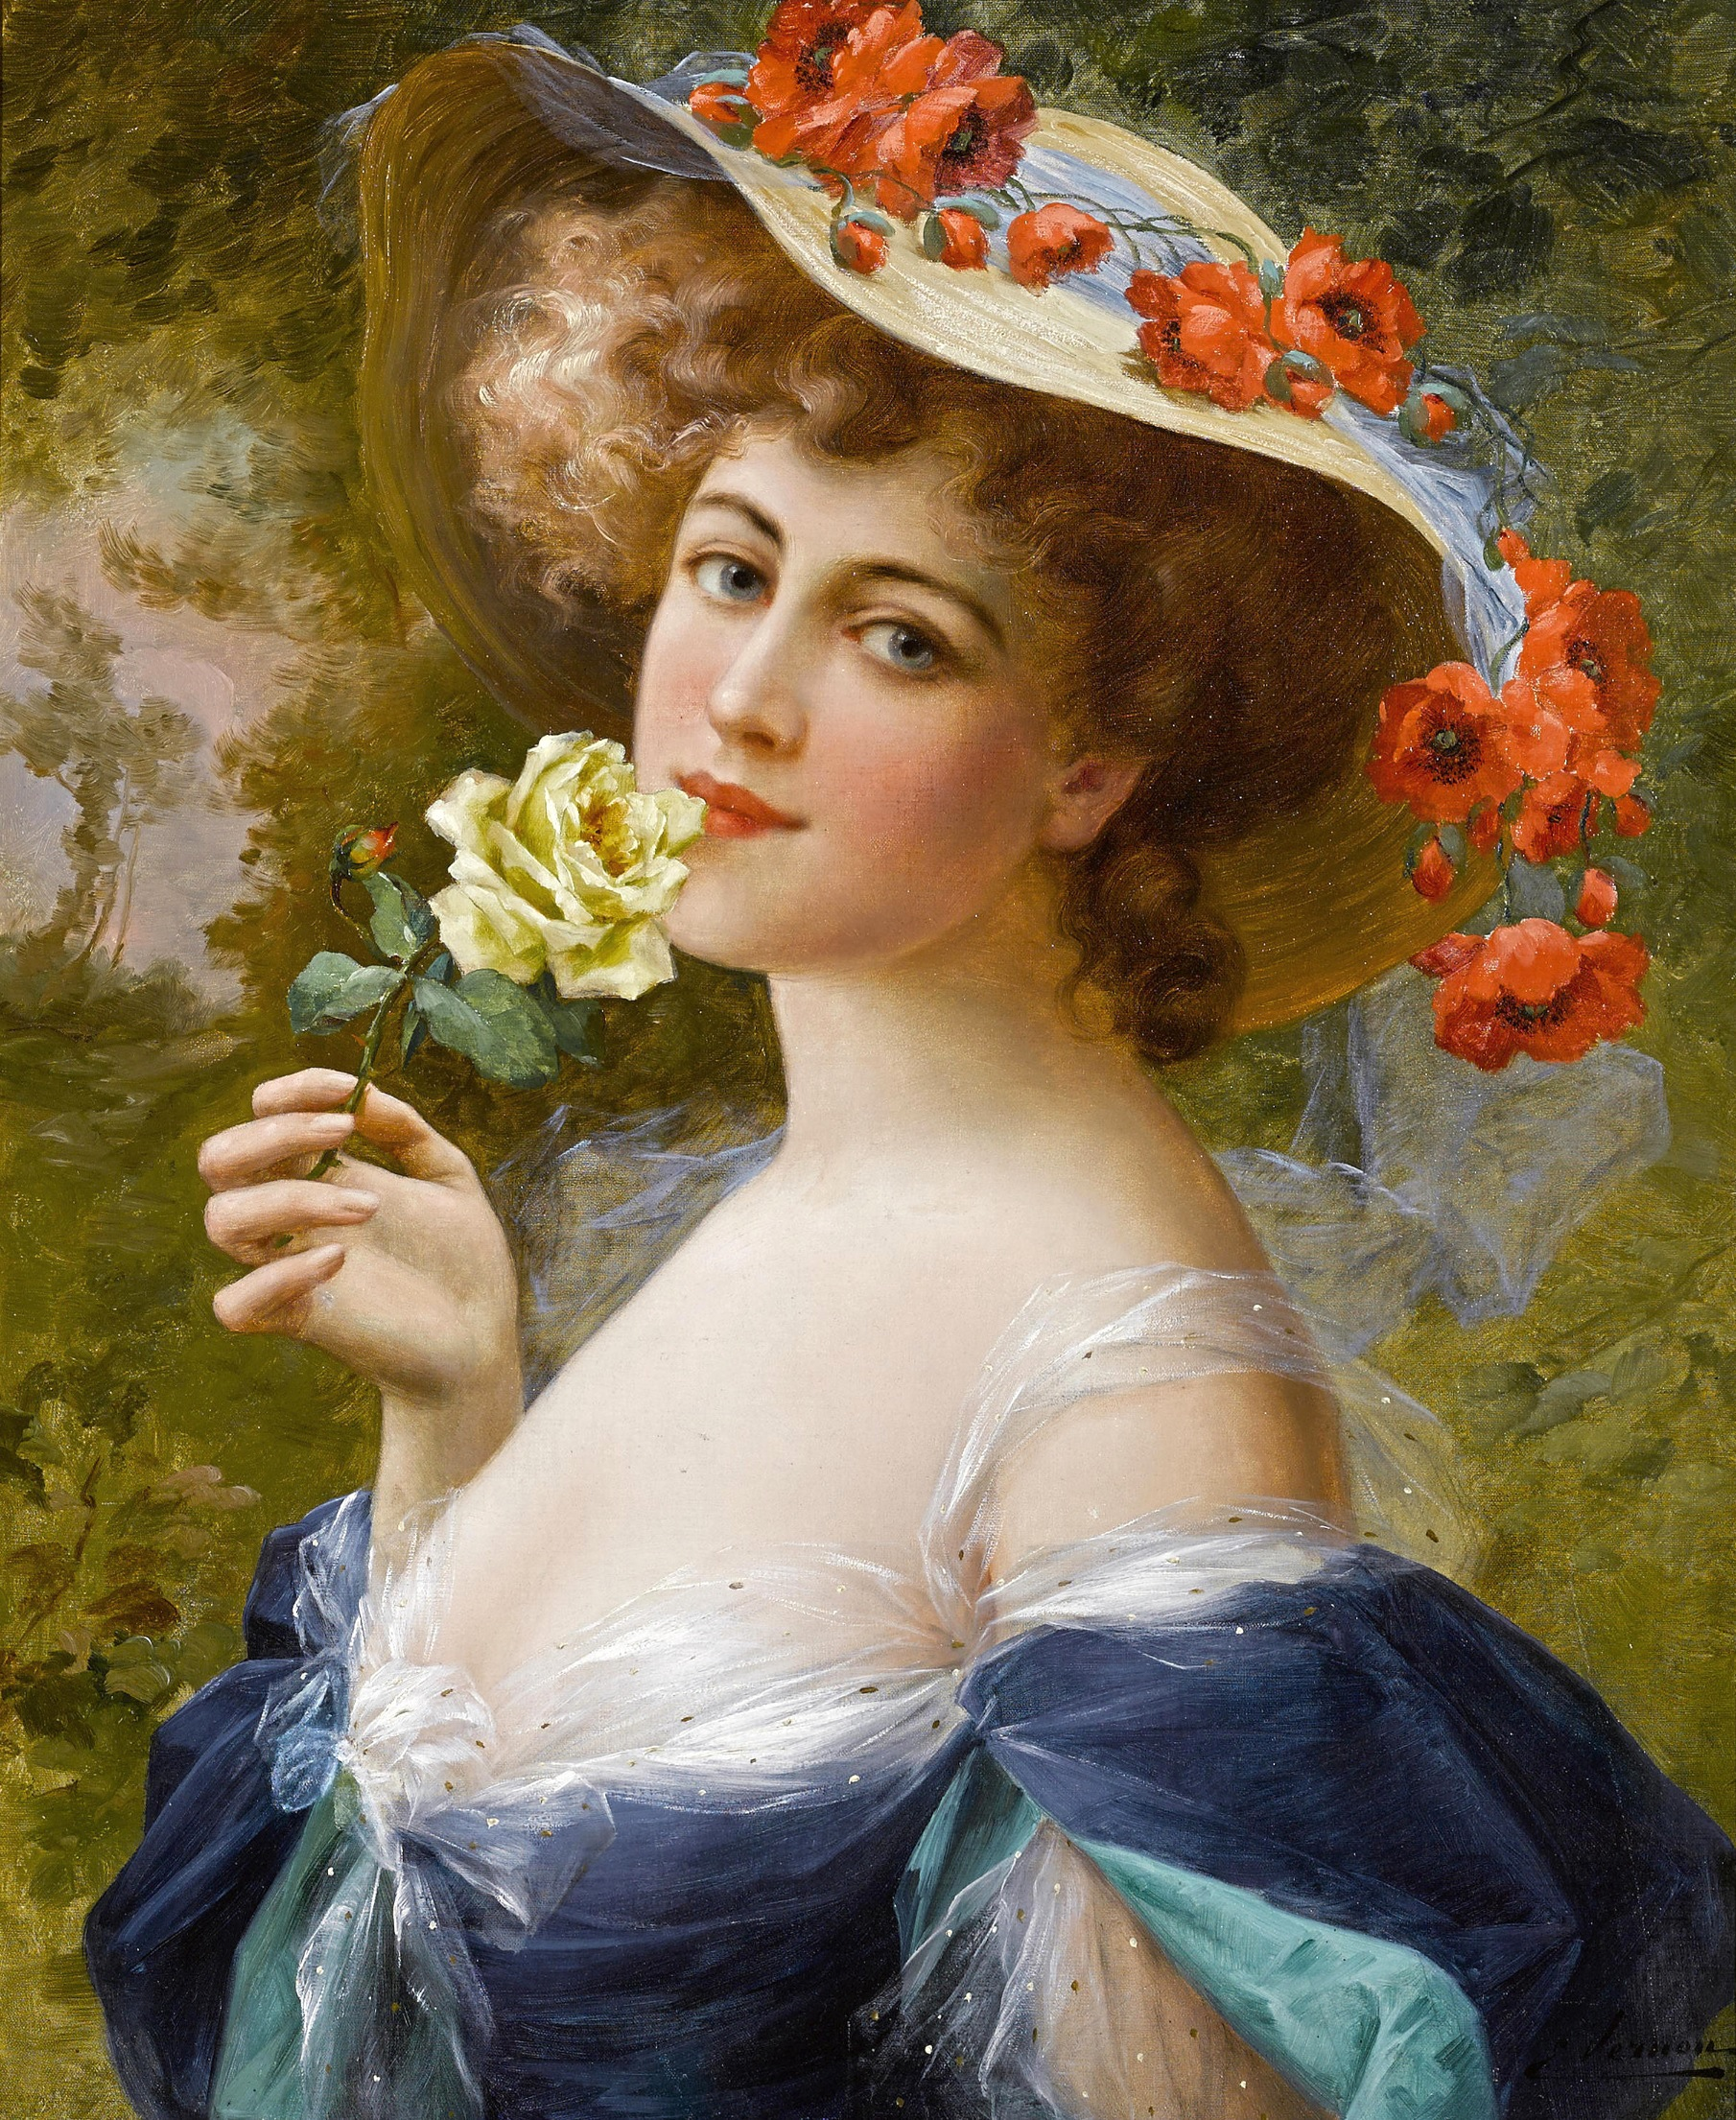 Portrait of a Lady by Emile Vernon - Date unknown